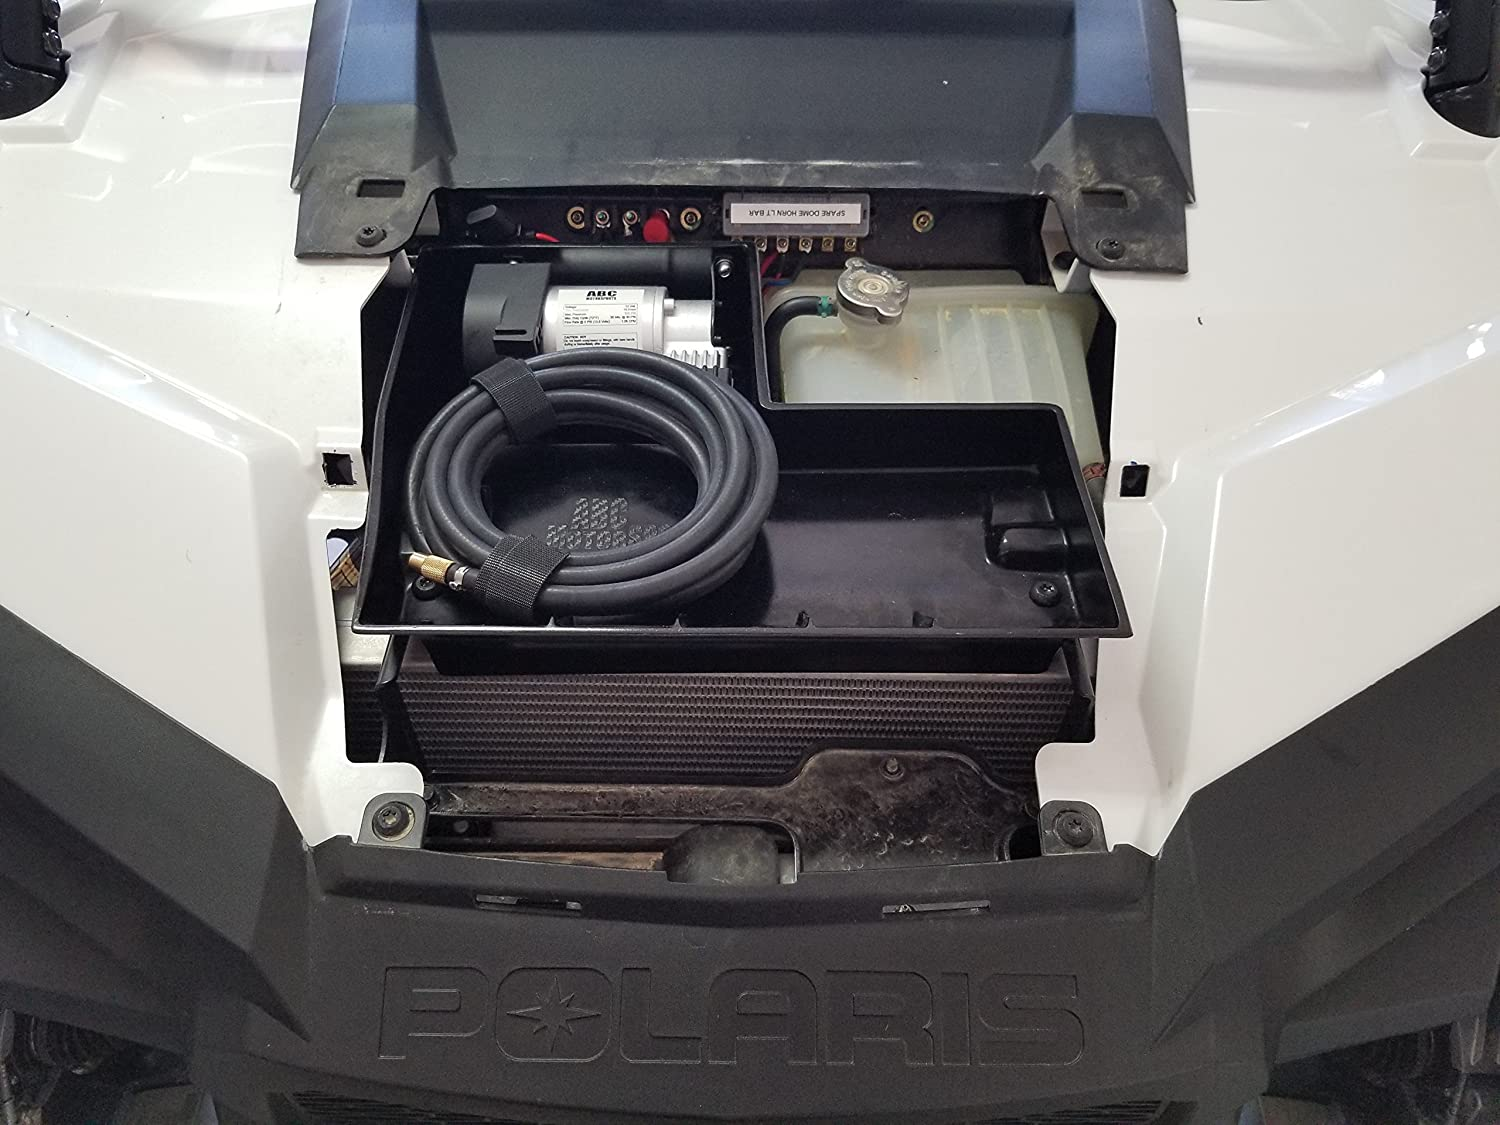 Amazon.com: On Board Air System Polaris RZR-1000 Turbo & Turbo S Air Compressor And Storage Free Gift: Automotive